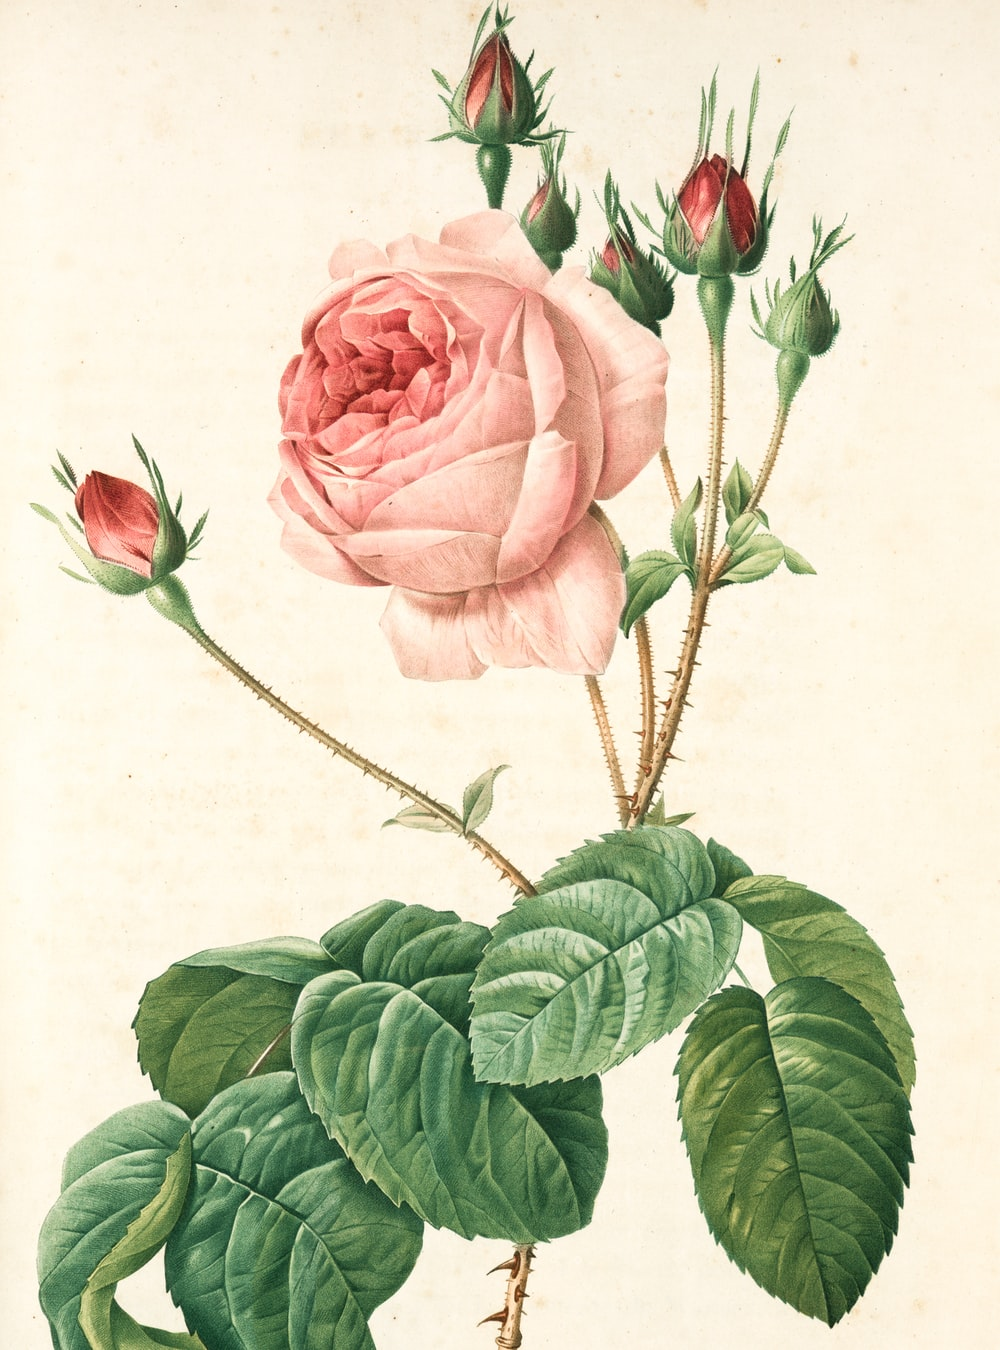 pink rose with green leaves